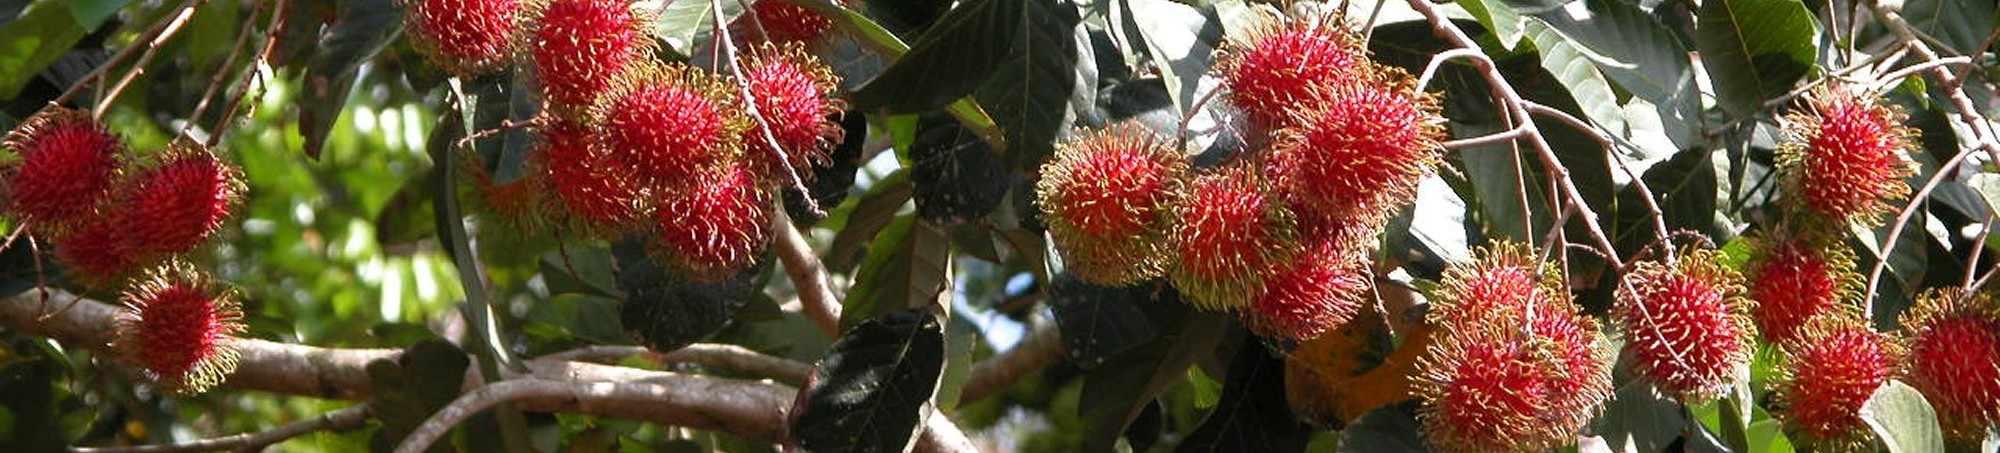 RAMBUTAN READY TO PICK